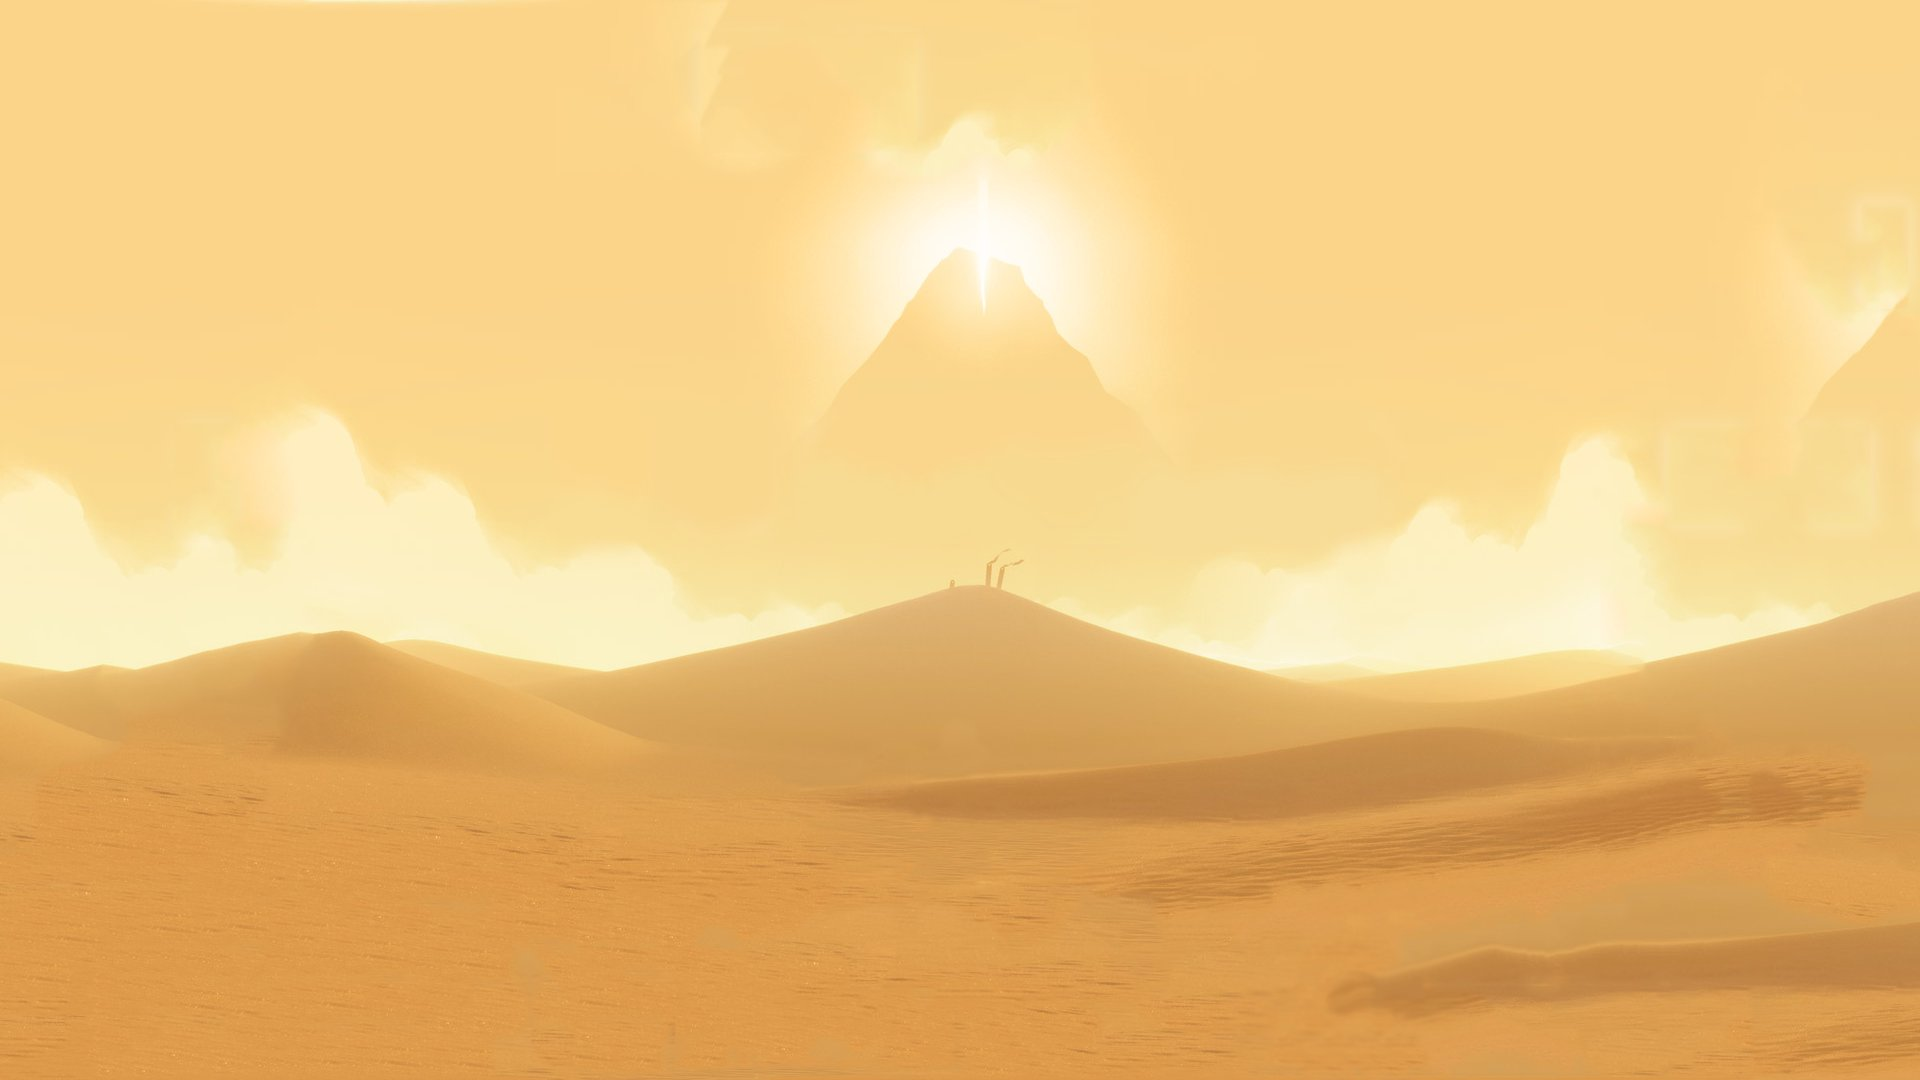 journey wallpapers photos and desktop backgrounds up to